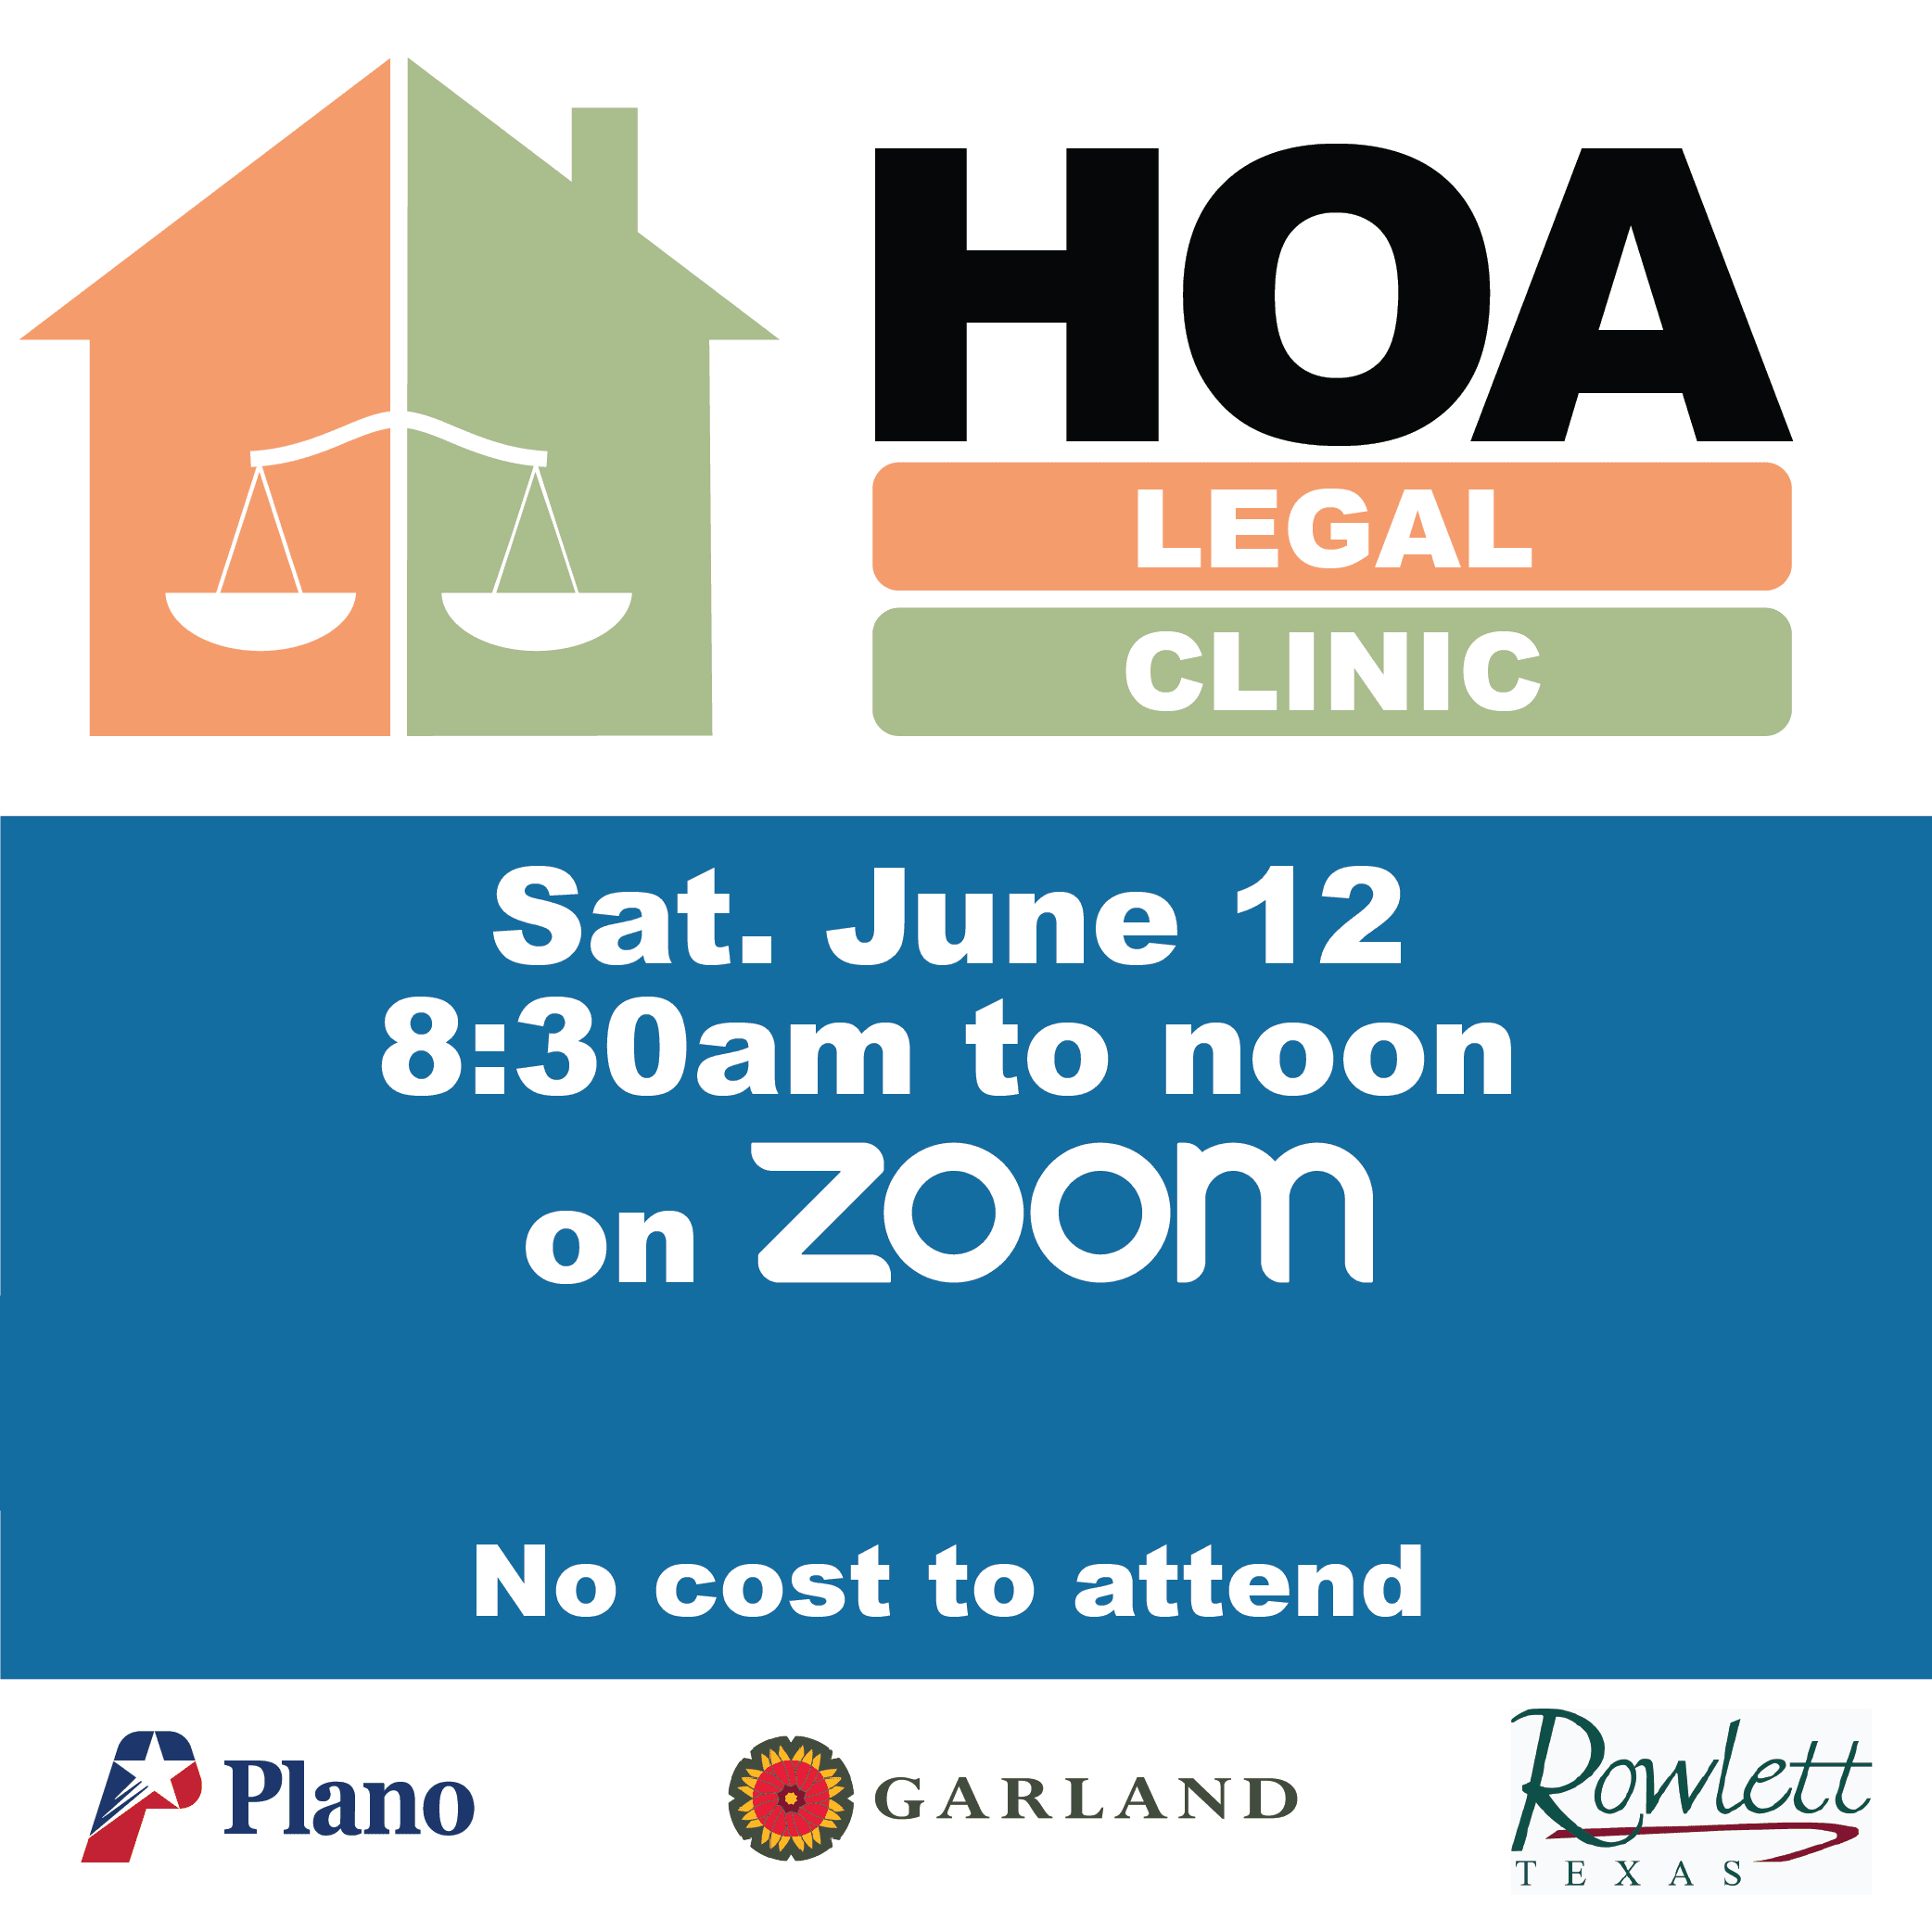 HOA Legal Clinic | Saturday, June 12, 8:30 a.m. to Noon on Zoom, No cost to attend.